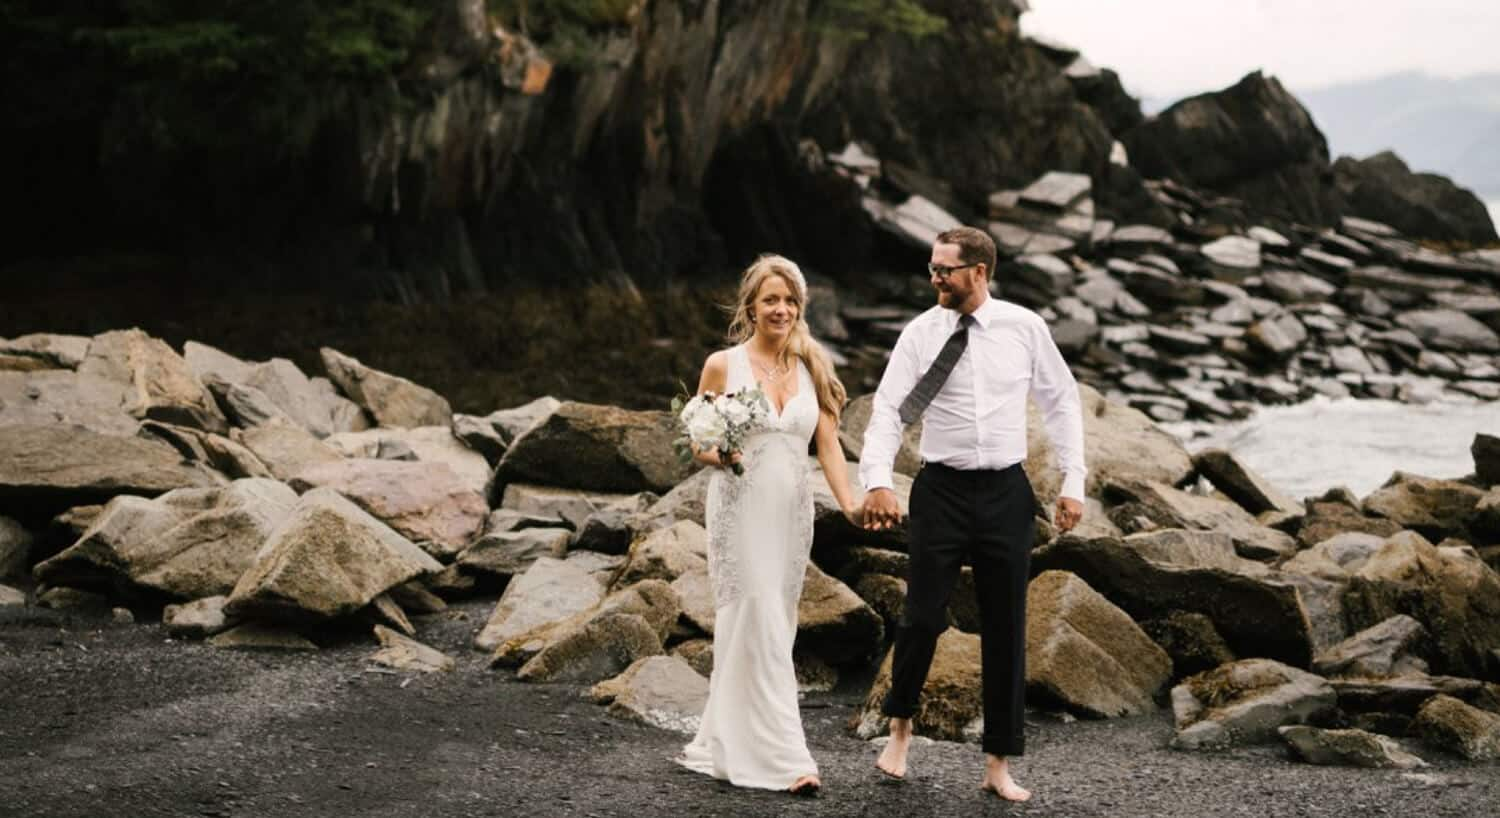 bride and groom with bare feet holding hands walking away from rocks by water